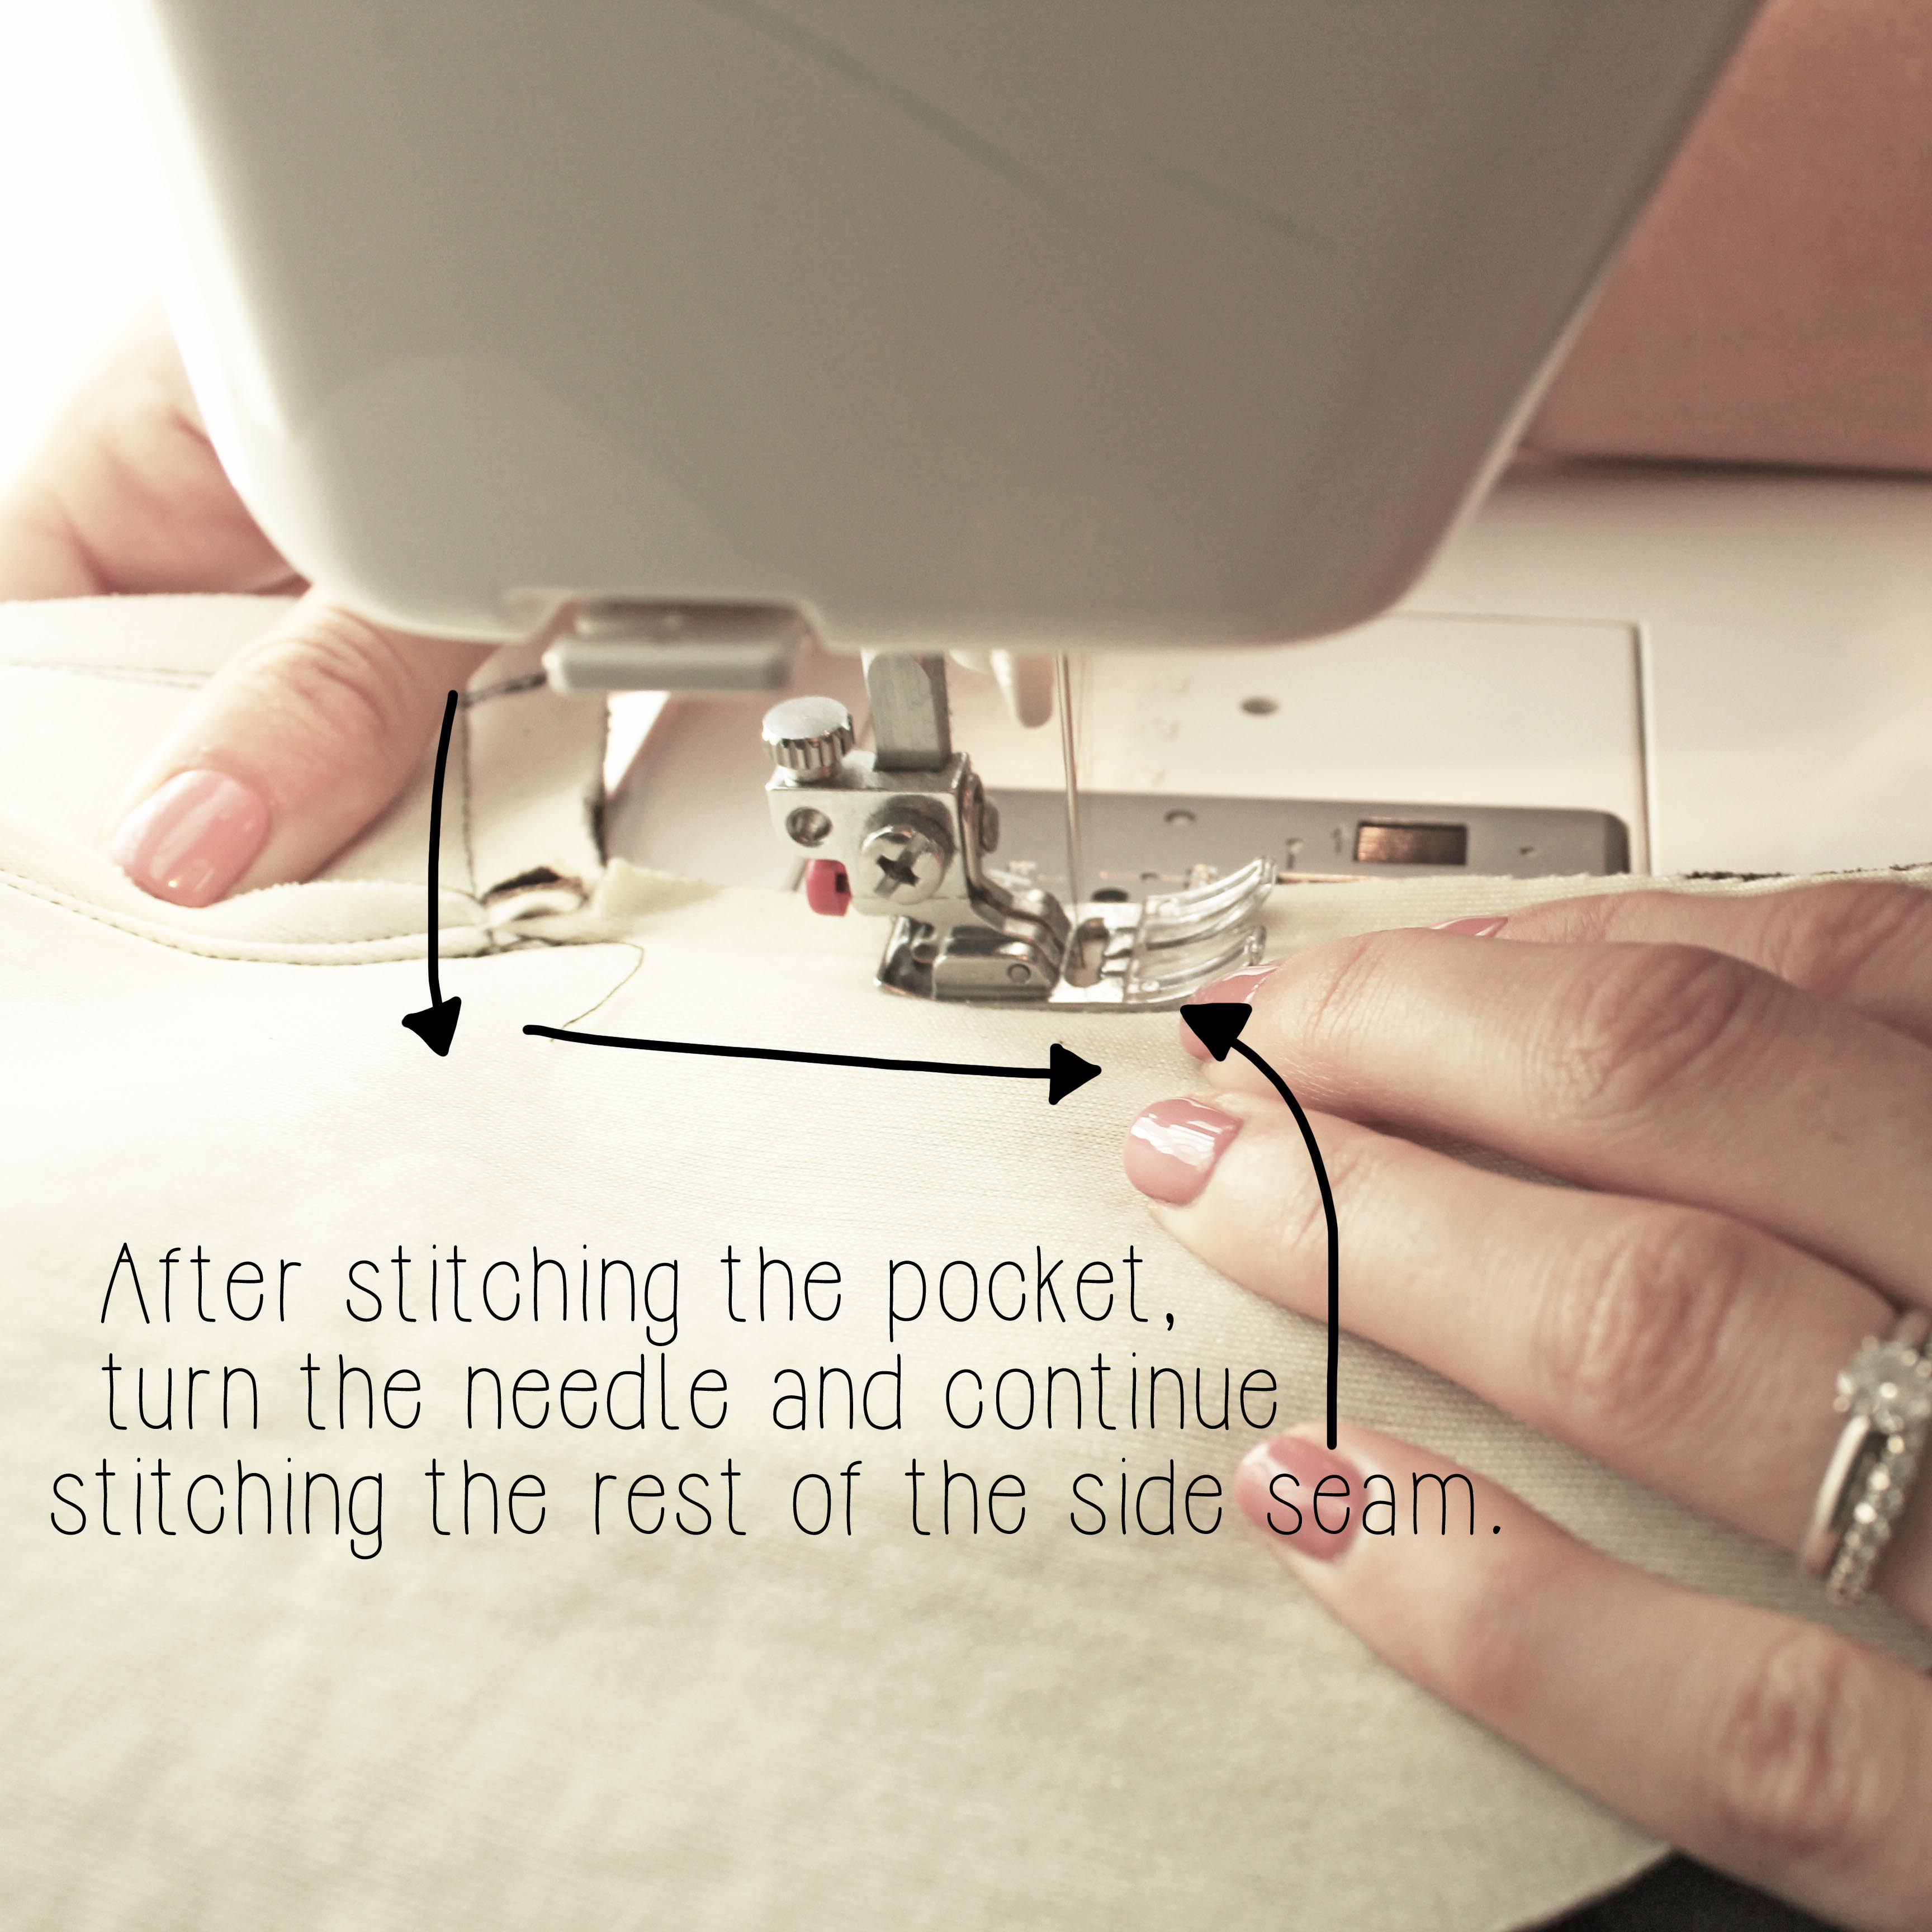 The Ashby Coat Sewing Tutorial Garment Construction Sewing Technique Step 6.3 Finish Sewing